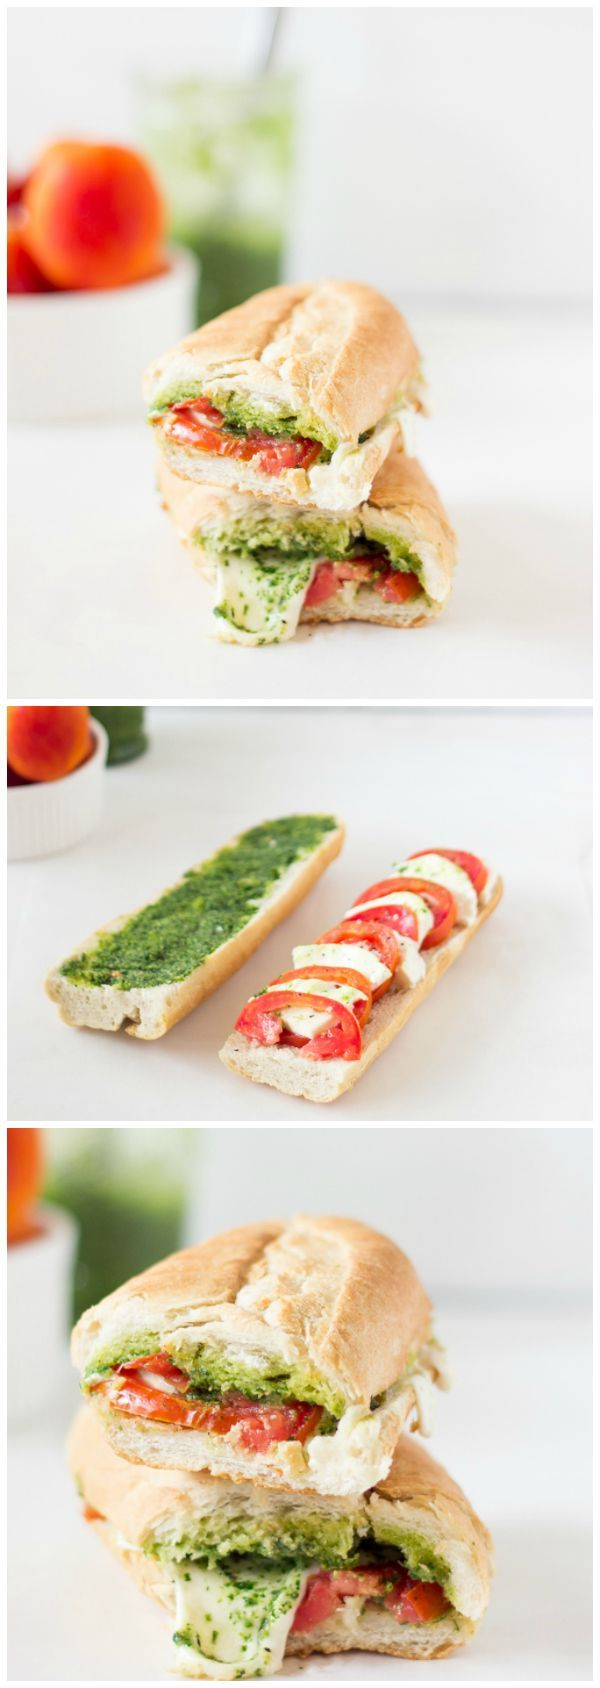 DROOLING --> Toasted Caprese Sandwich with Melted Mozzarella & Creamy Pesto #comfort #picnic #appetizer